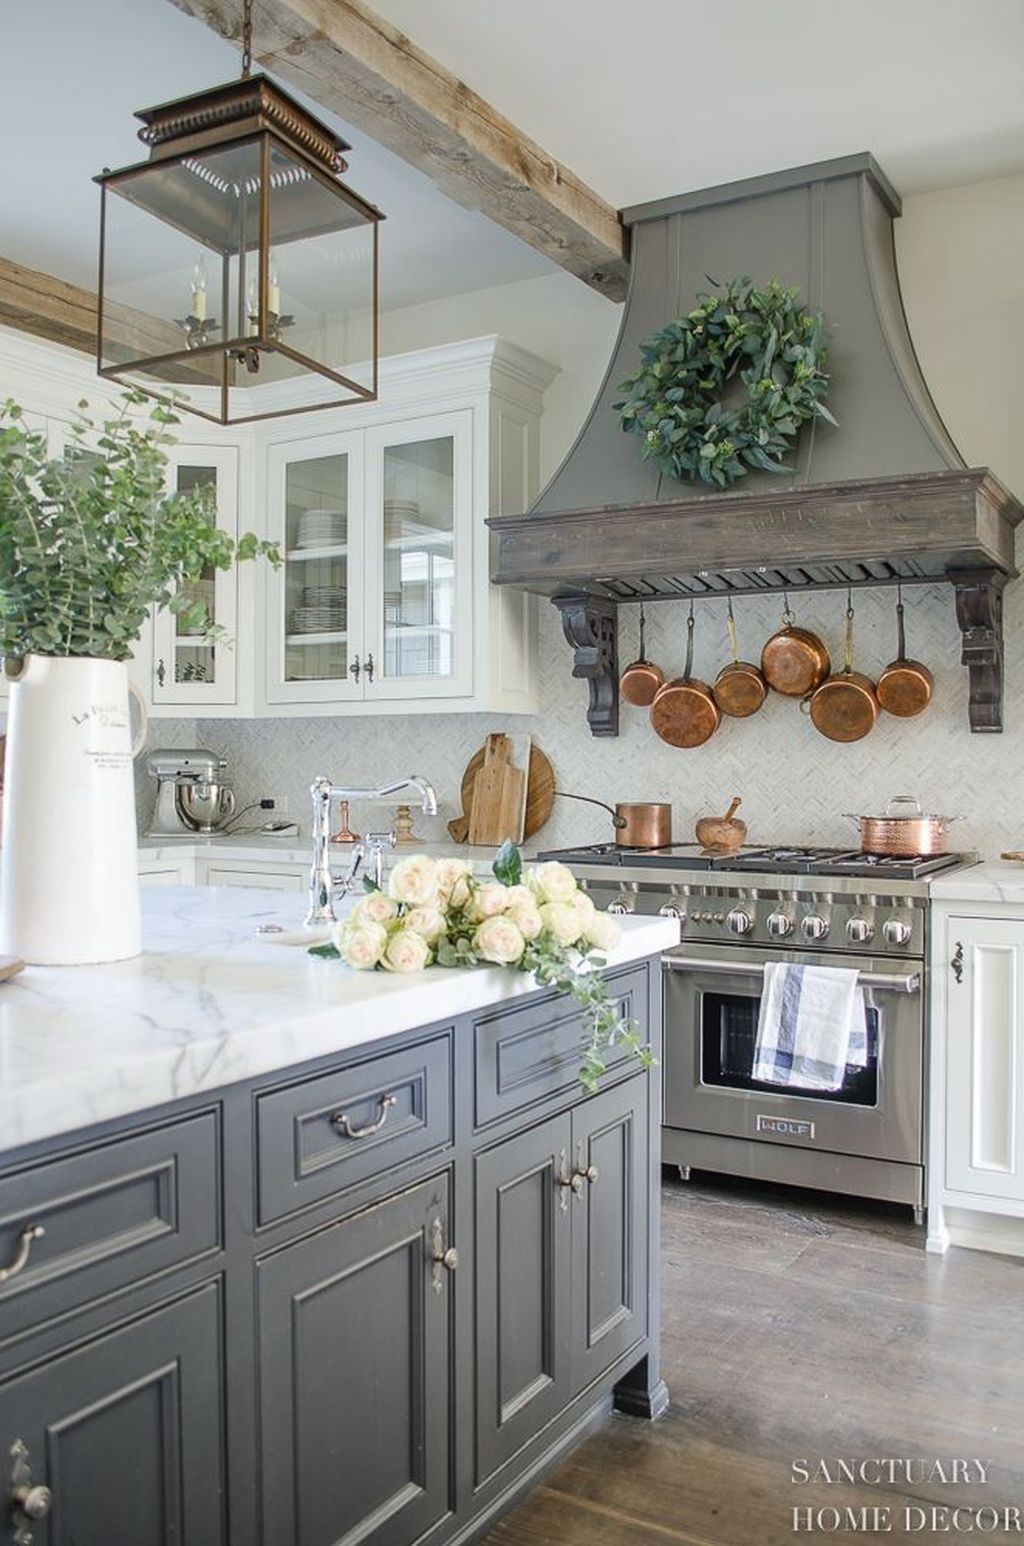 The Best French Country Style Kitchen Decor Ideas 11